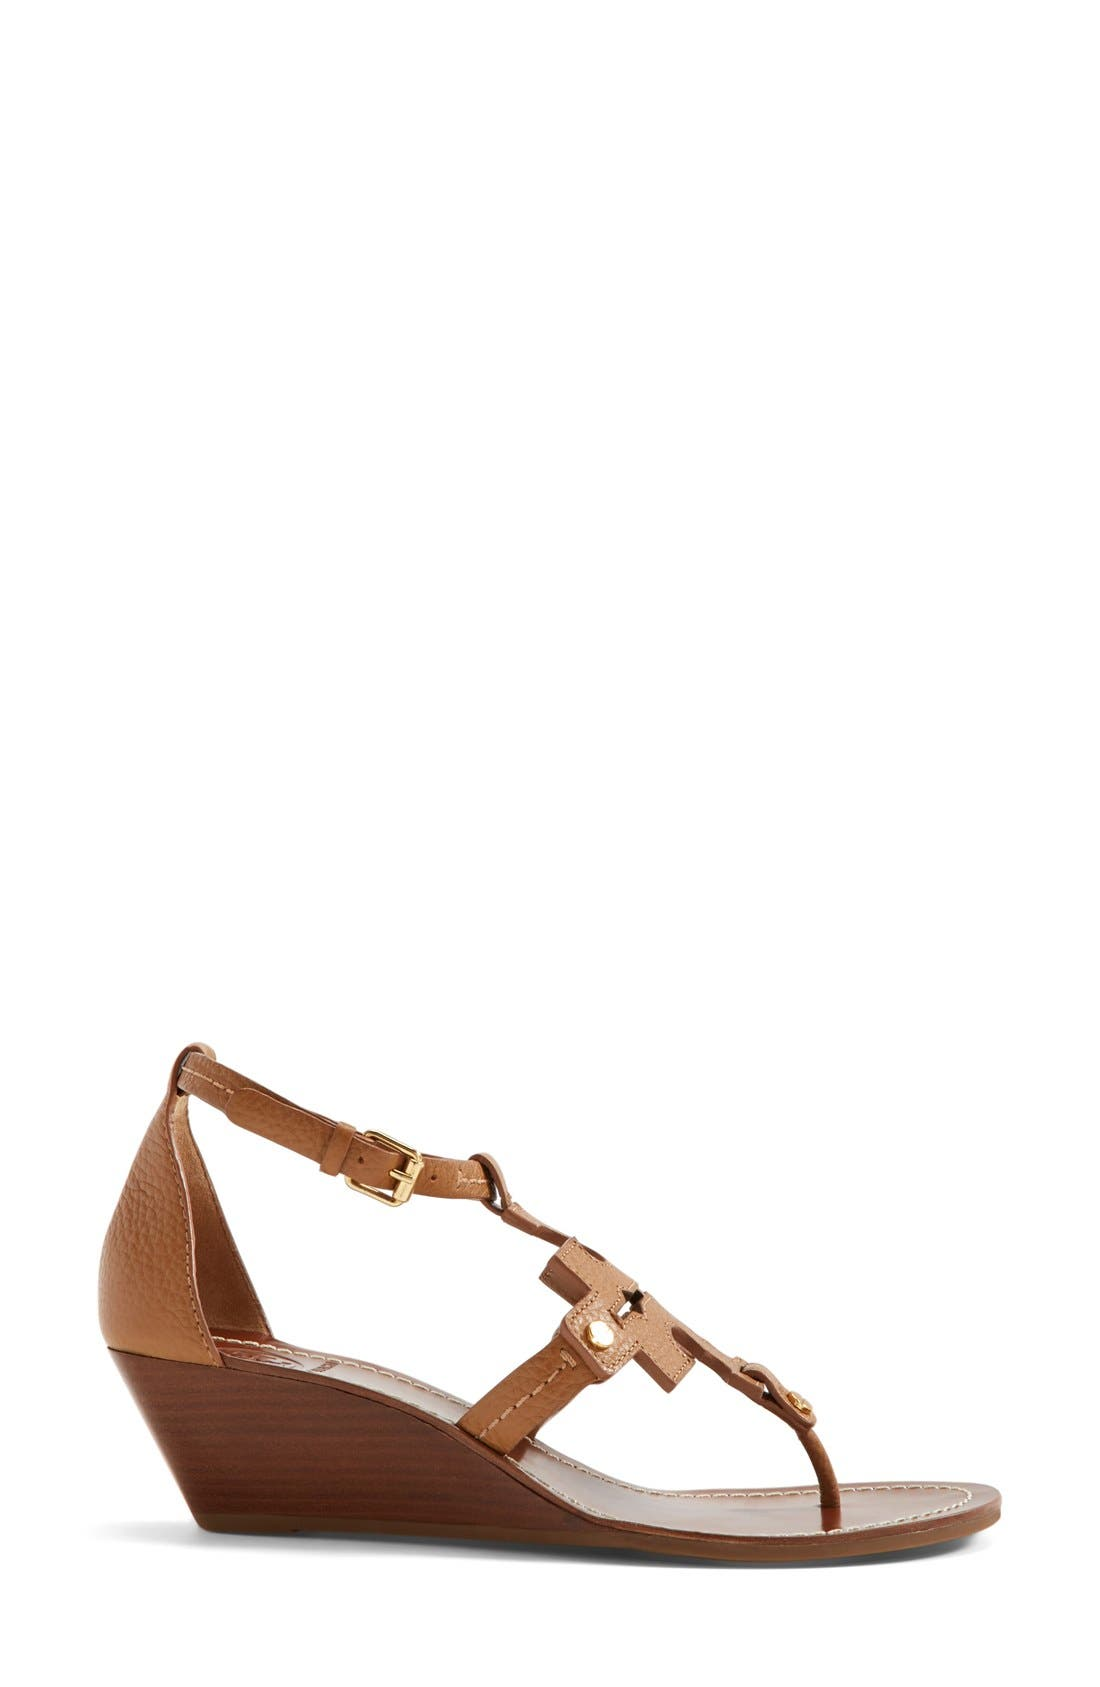 Alternate Image 4  - Tory Burch 'Chandler' Wedge Leather Sandal (Women)